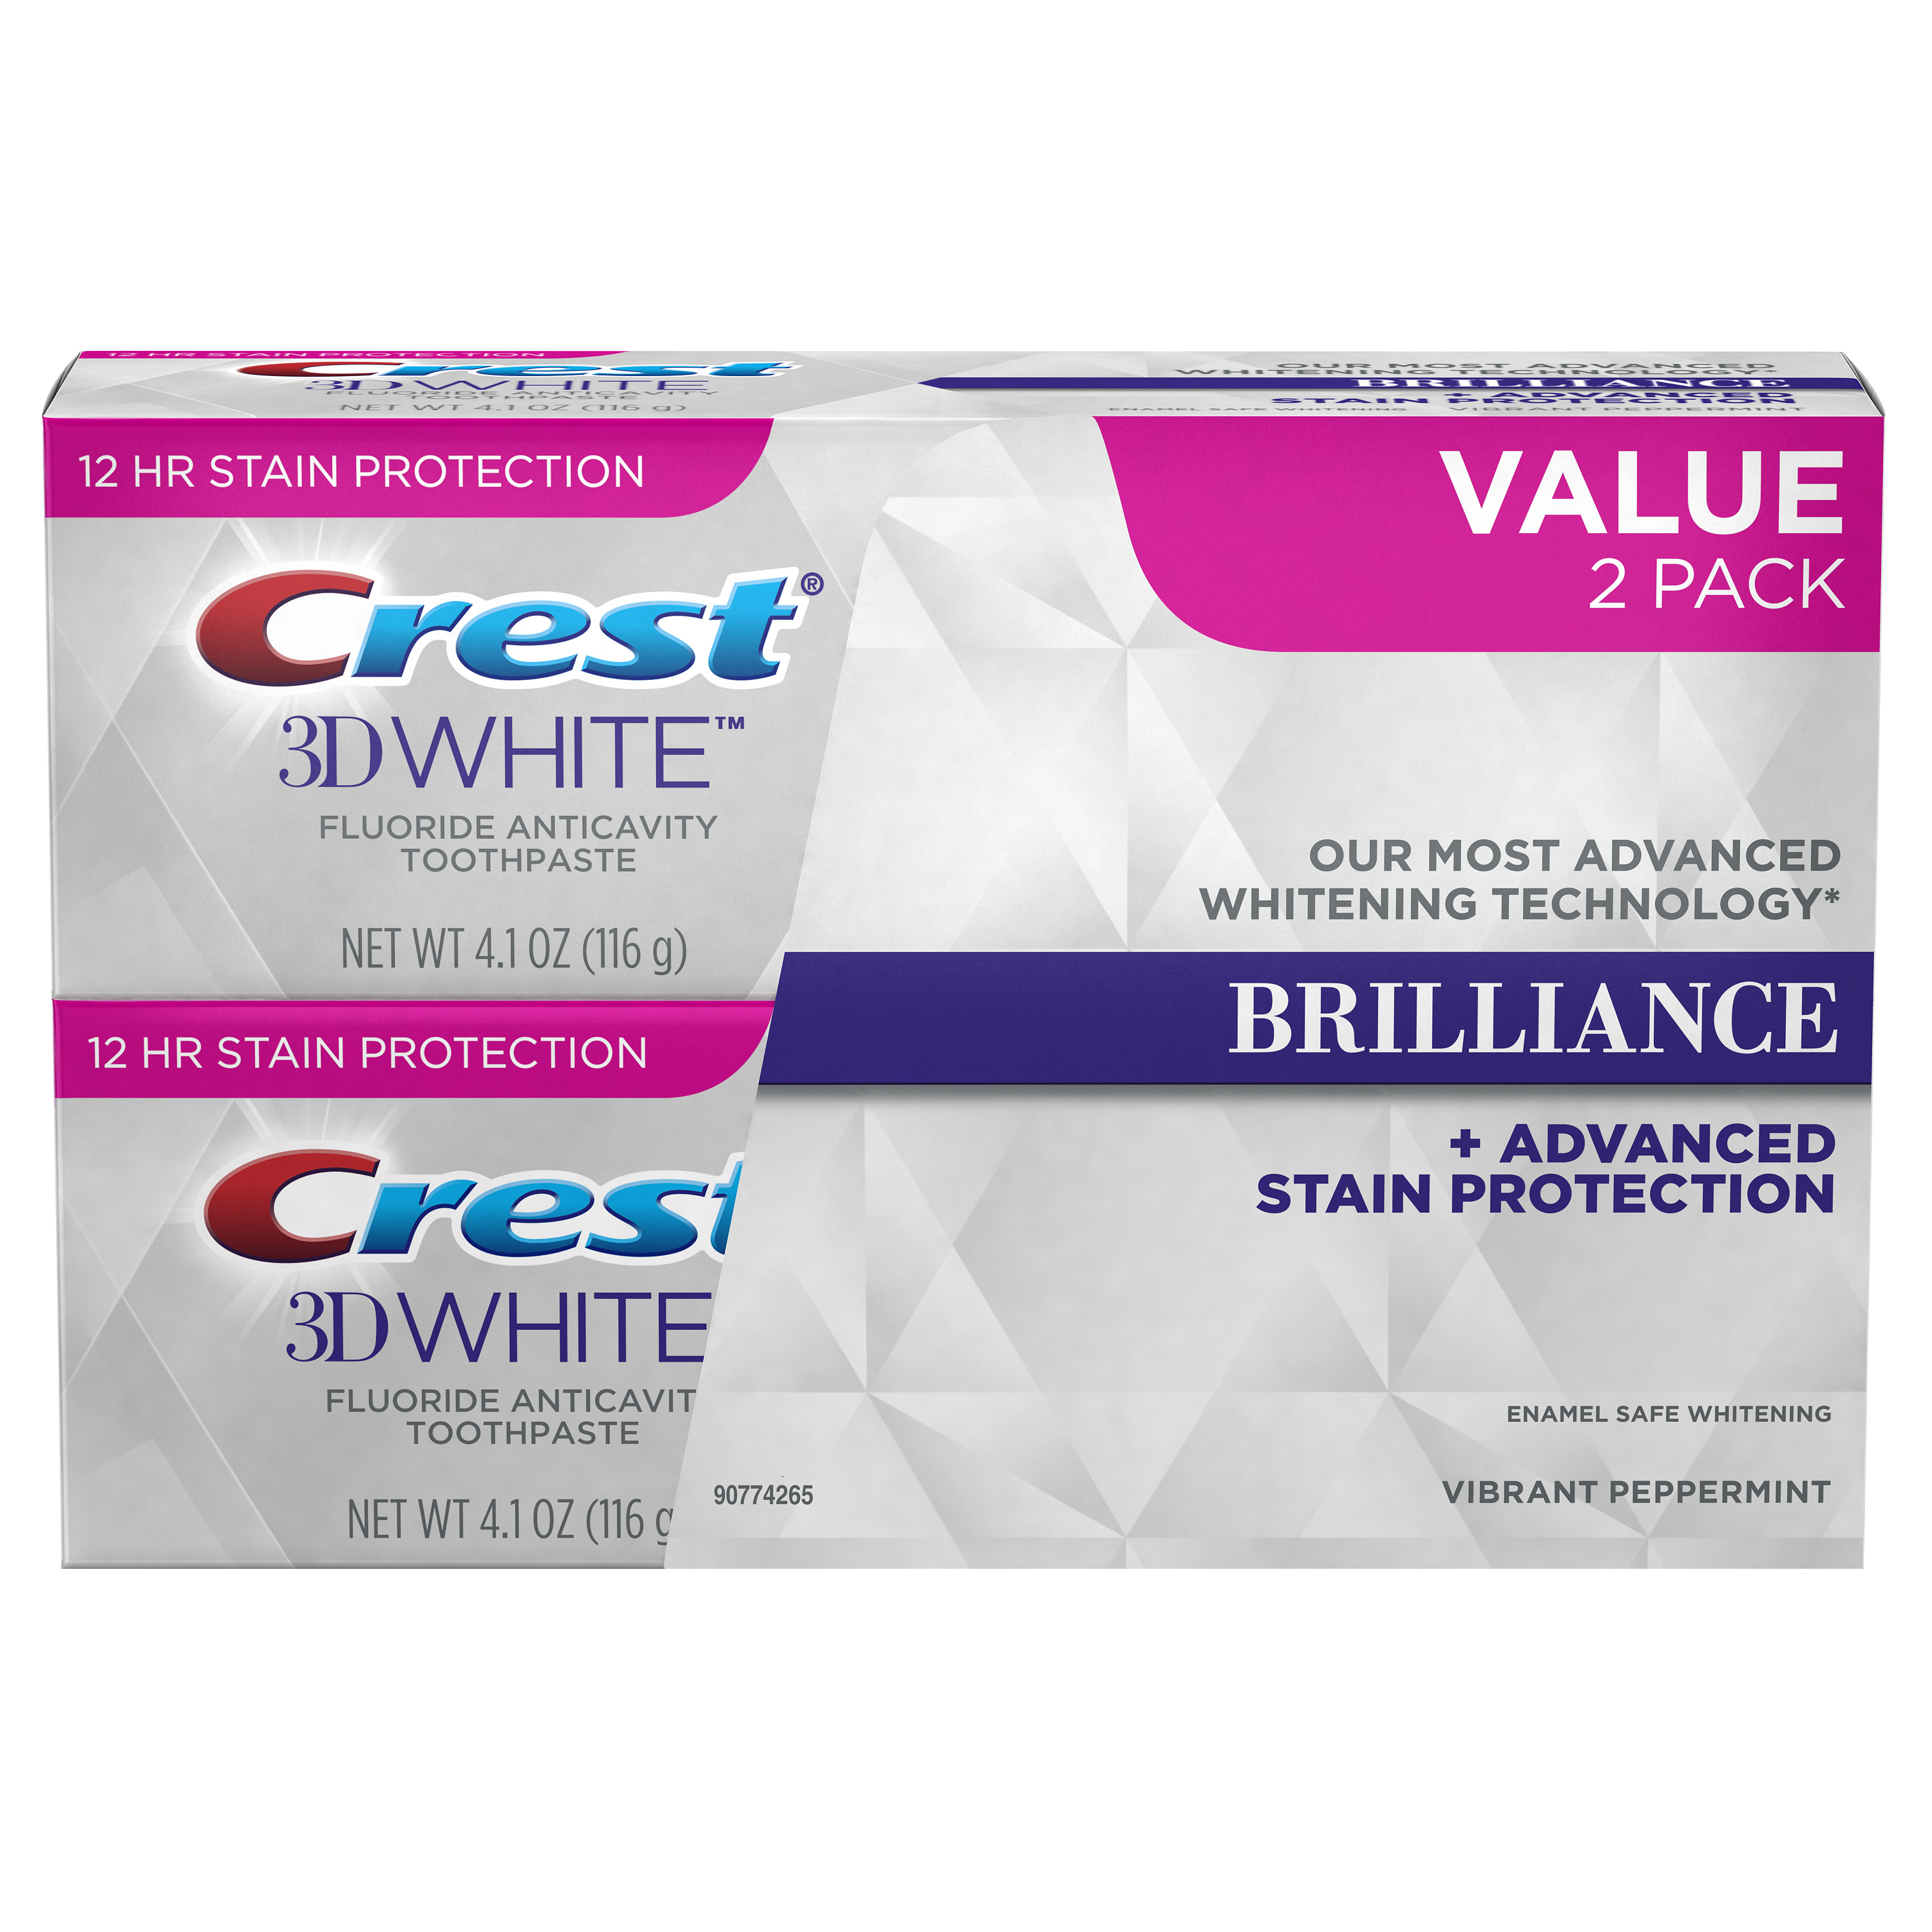 Crest 3D White Brilliance Vibrant Peppermint Toothpaste (Choose Count)